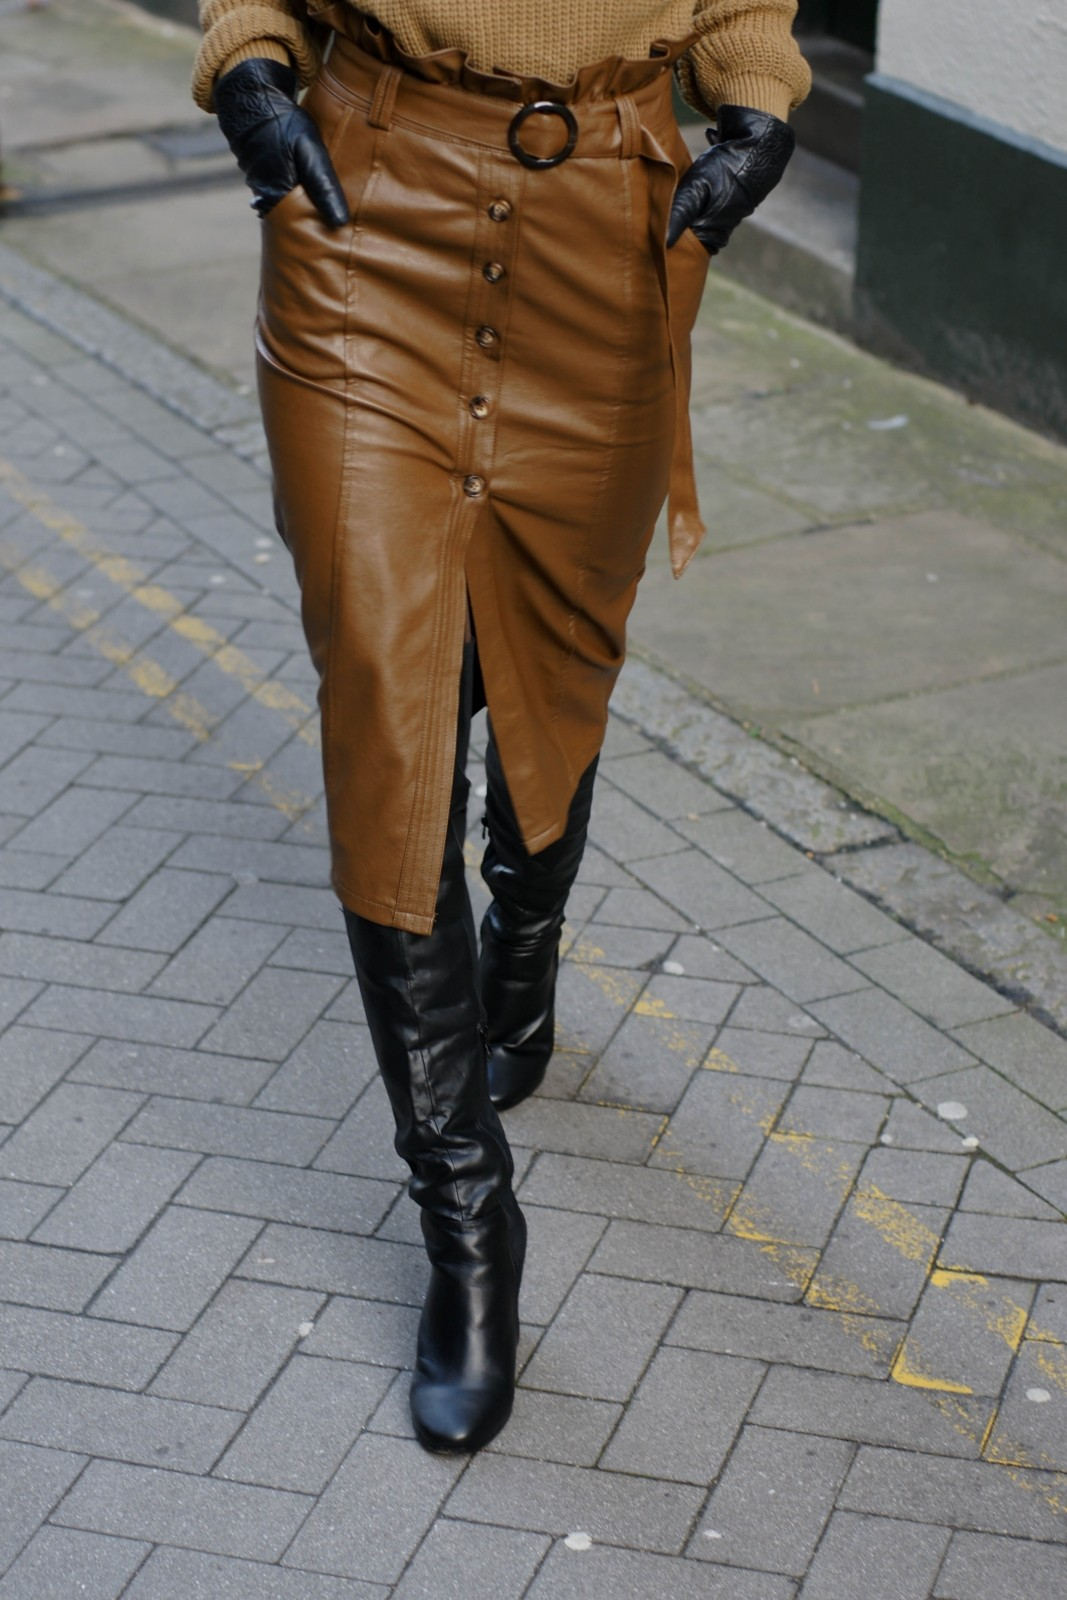 Over-the-knee Boots & Leather Skirt